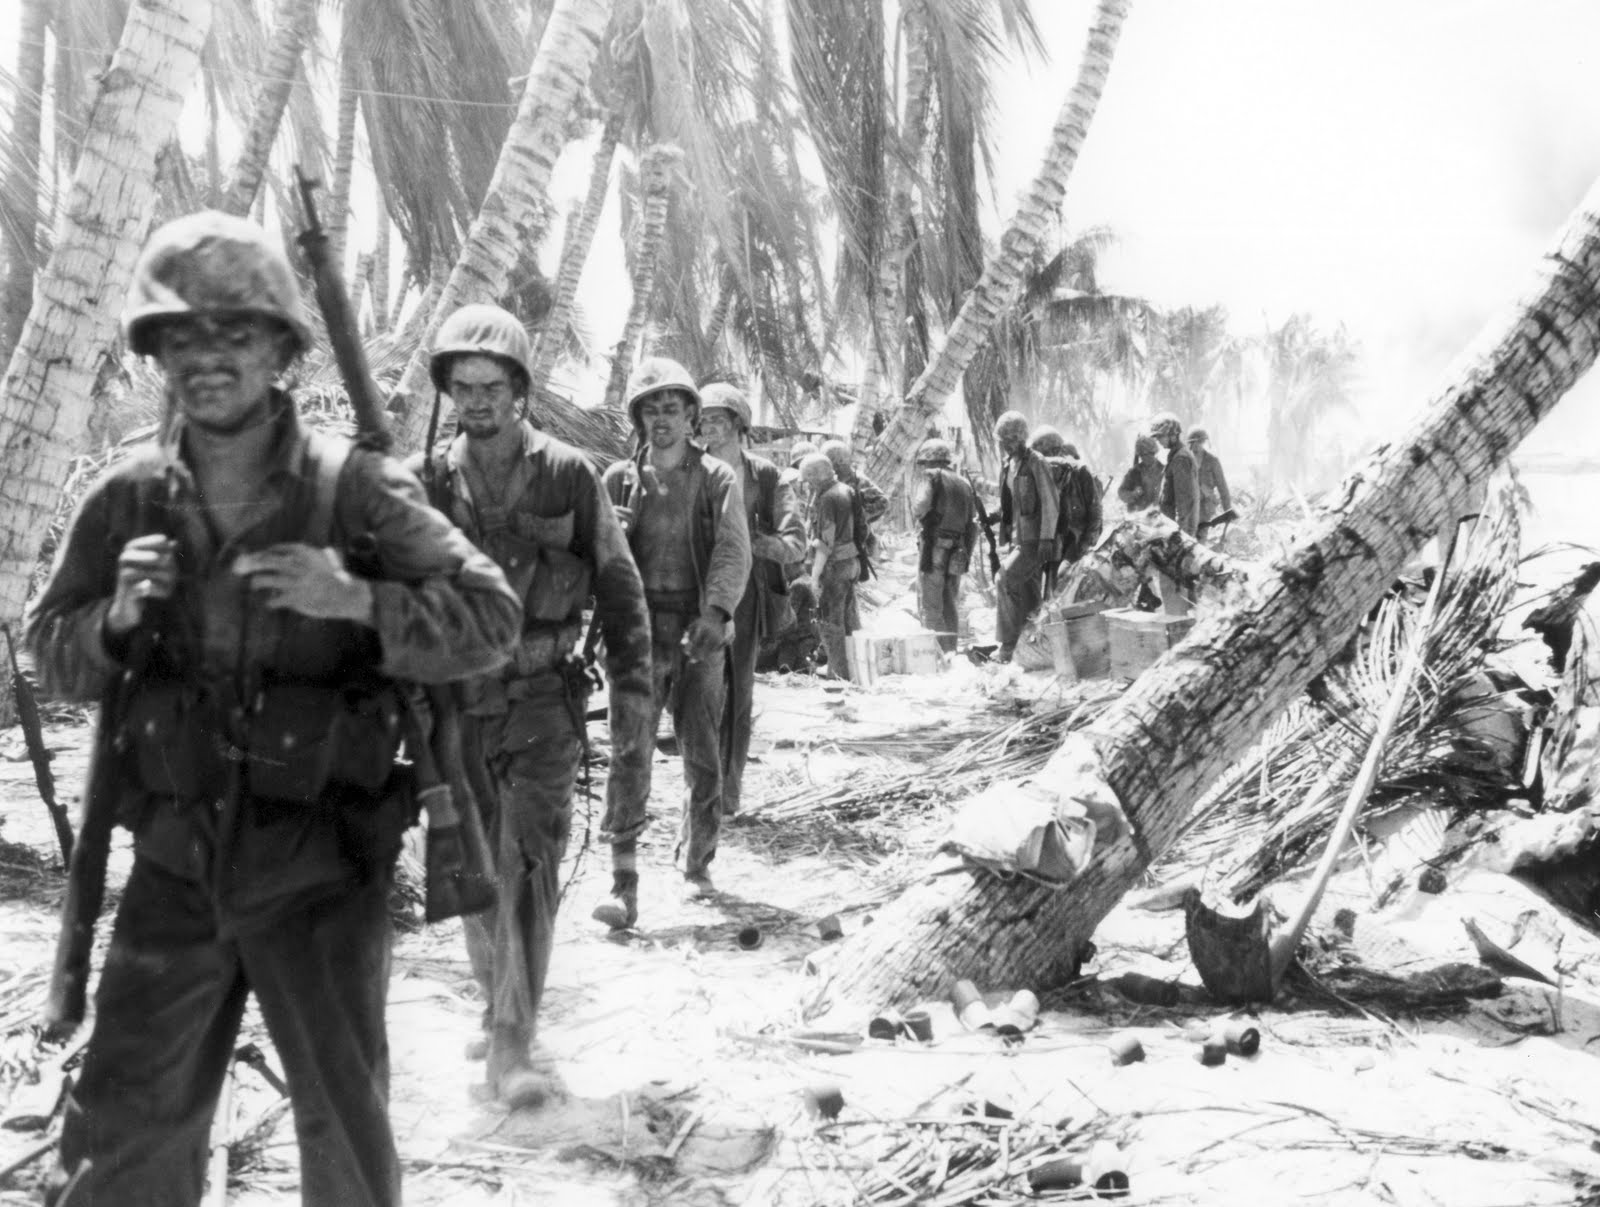 conflict in the pacific Conflict in the pacific i was wondering if any one has any information regarding two questions: a) account for the defeat of japan in 1945 despite its dominant strategic position in 1942.